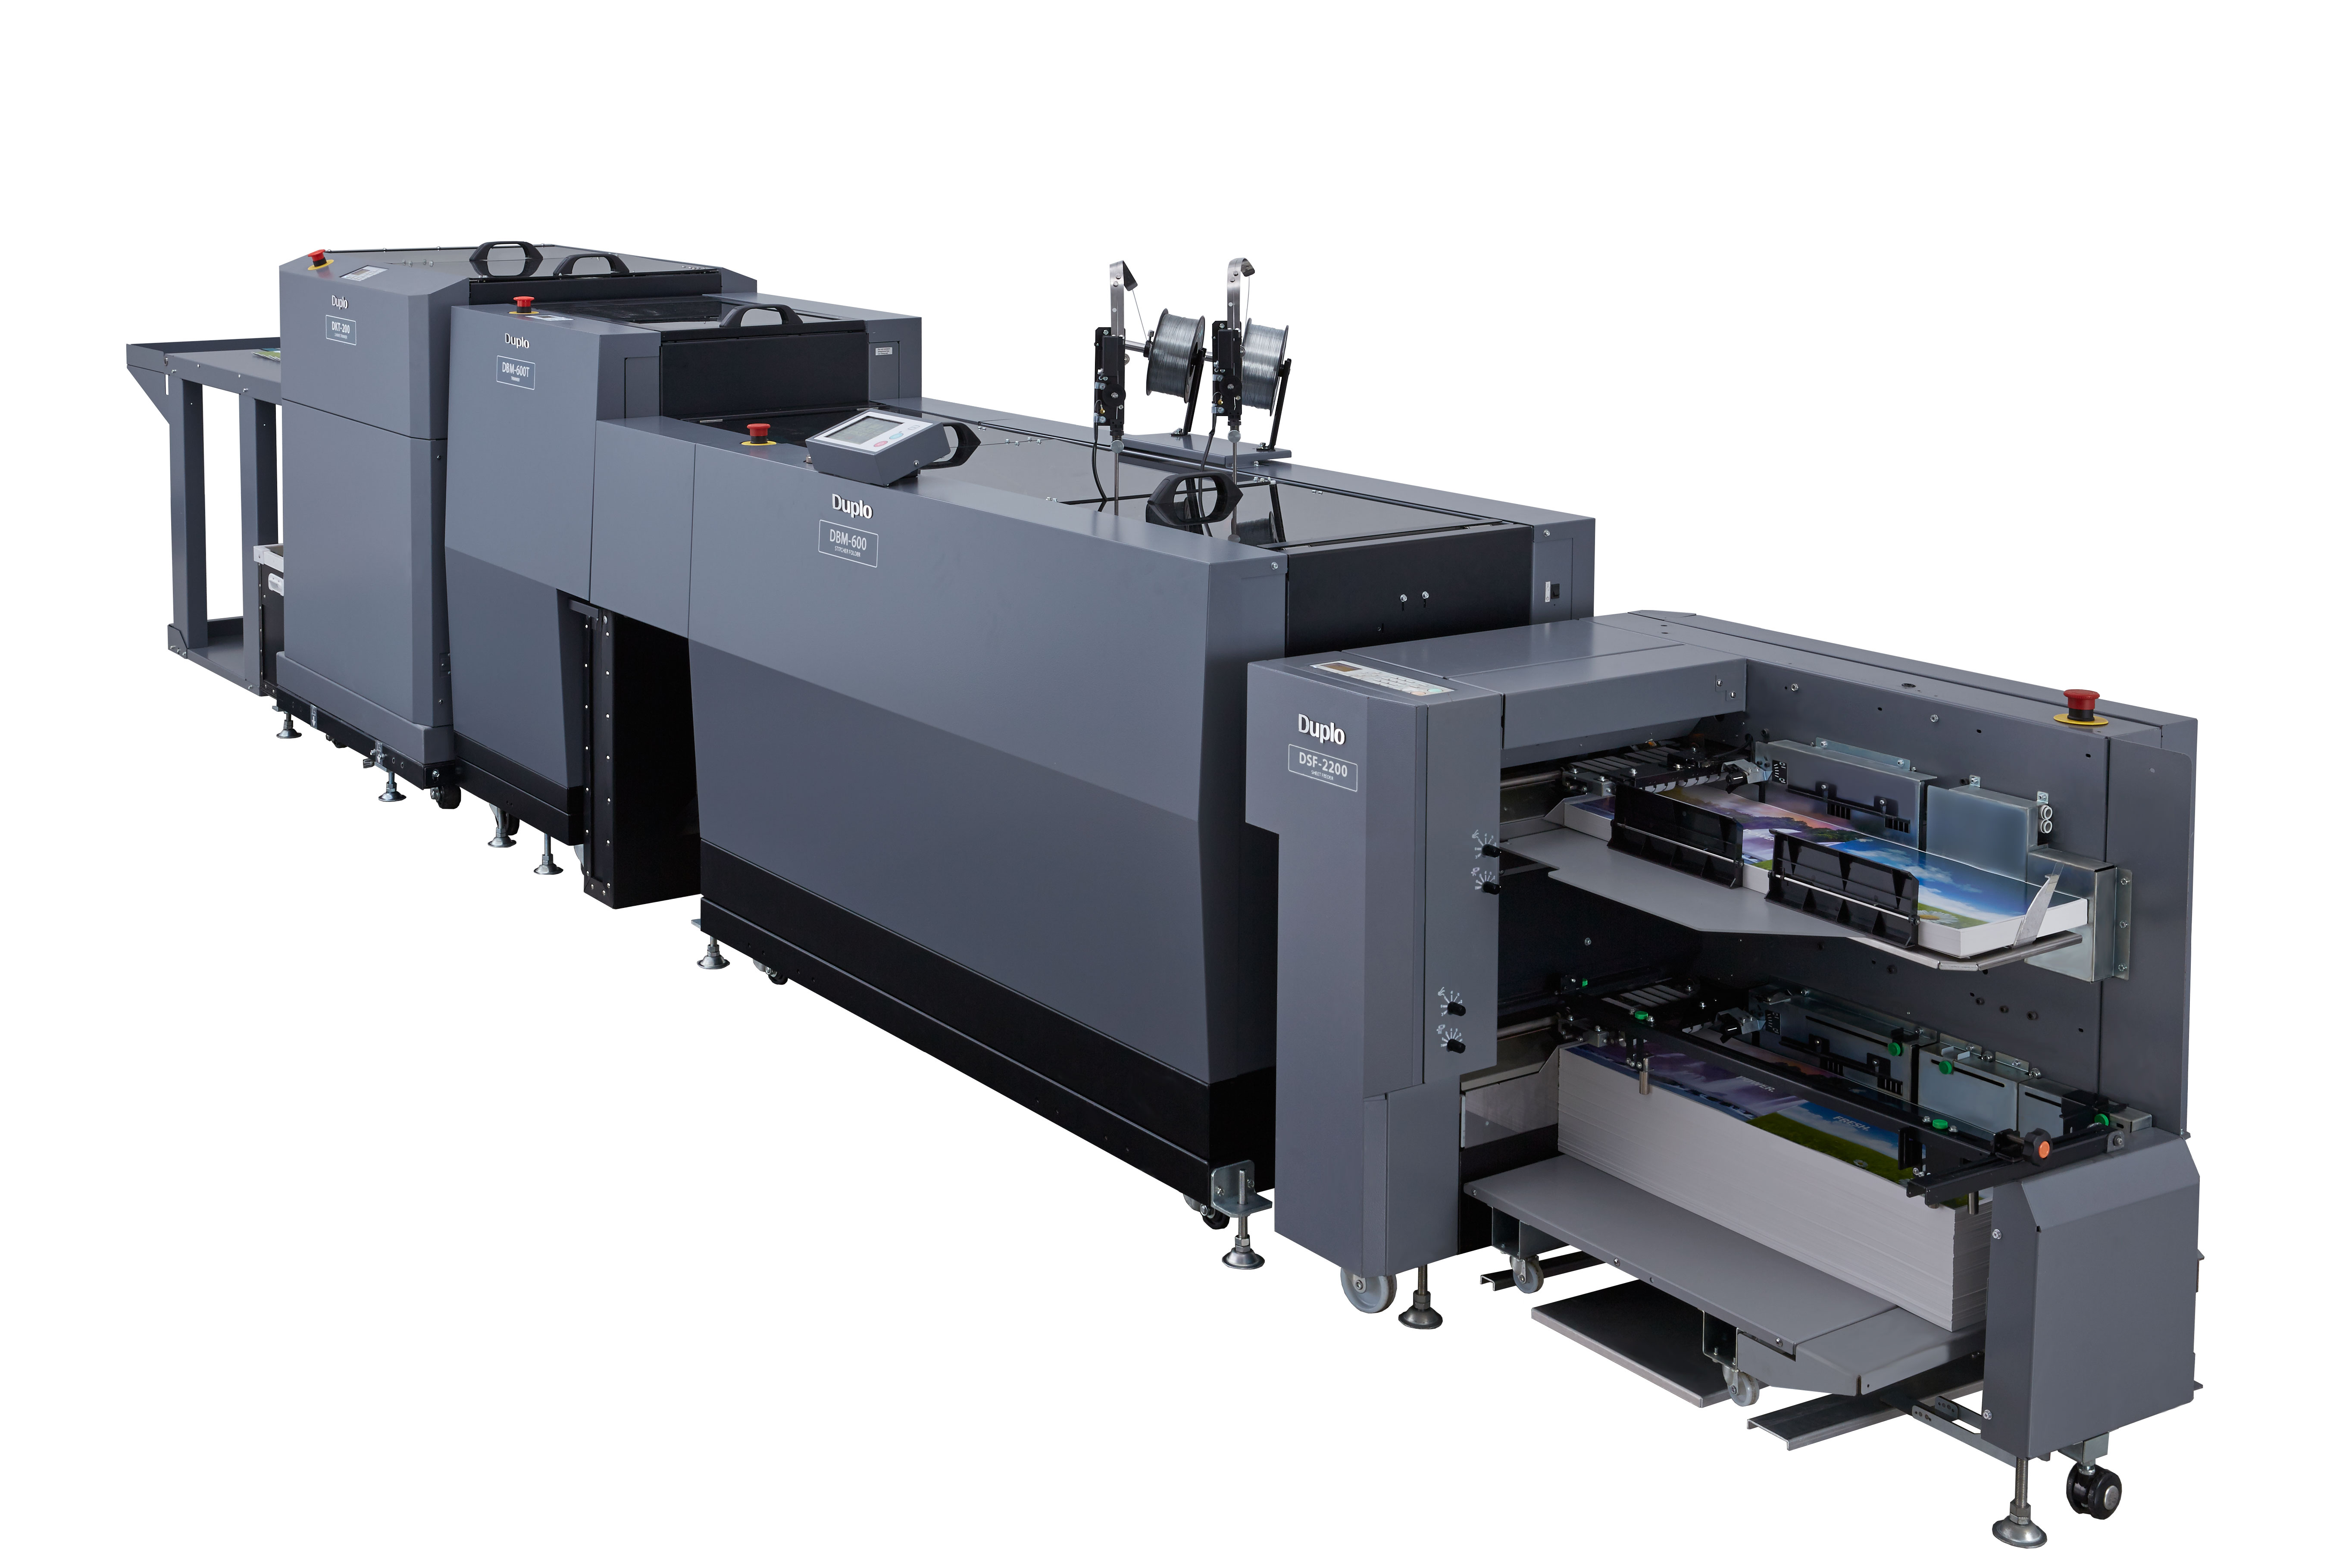 600i Digital Booklet System Image